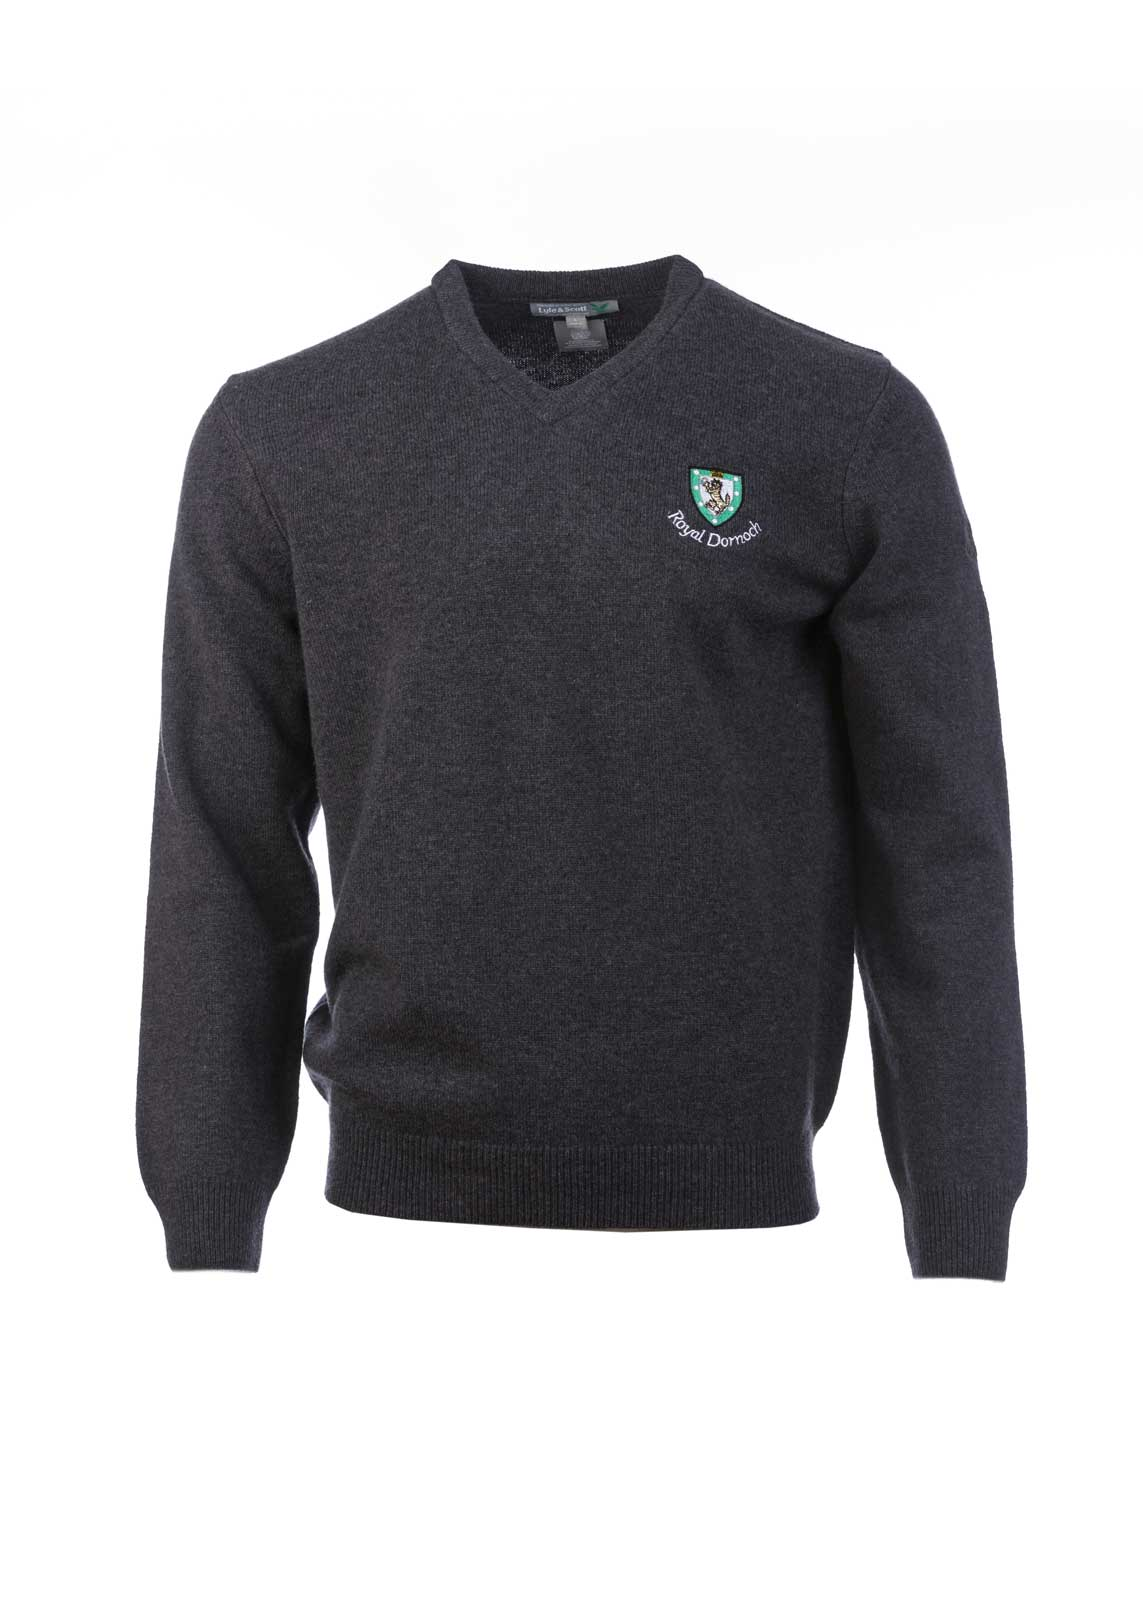 Lyle Amp Scott Classic V Neck Sweater Royal Dornoch Pro Shop